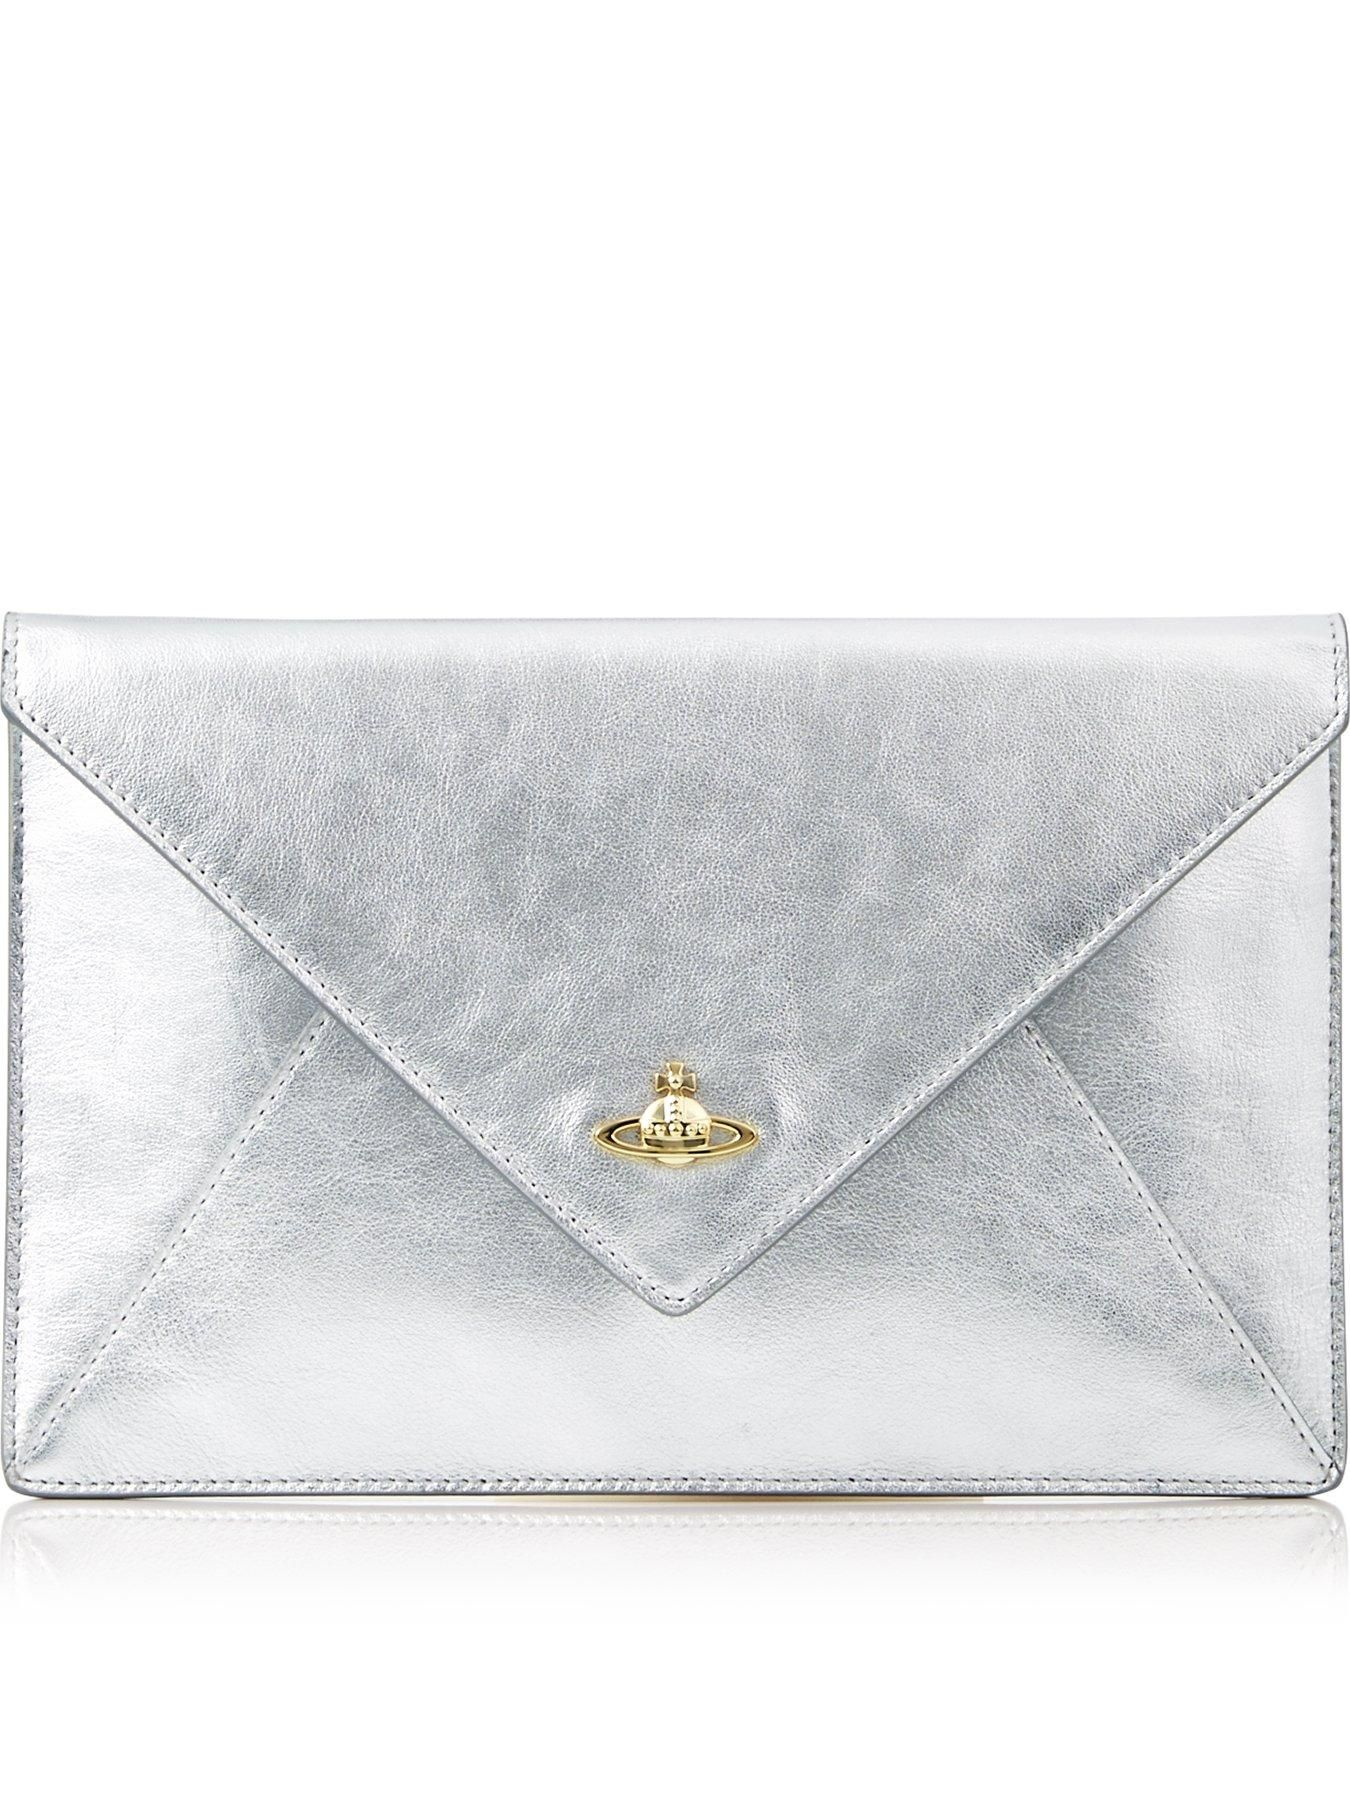 4922182aaff6 VIVIENNE WESTWOOD Private Envelope Clutch - SilverSize  amp  Fit  Dimensions  Height  16cm x